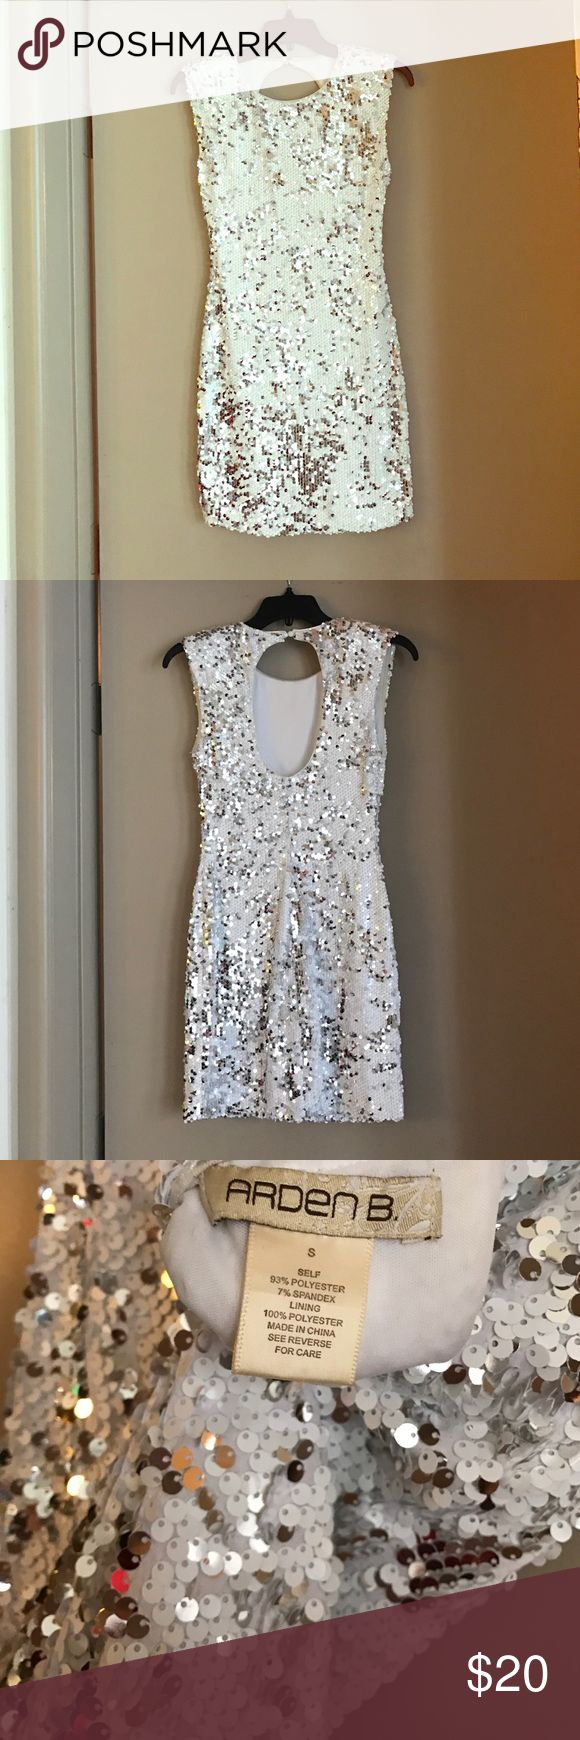 Sequined Arden B NYE Dress Perfect Dress for NYE or a night out. Stretches for a flattering, form-hugging look. Features a keyhole back. Worn once. Arden B Dresses Mini